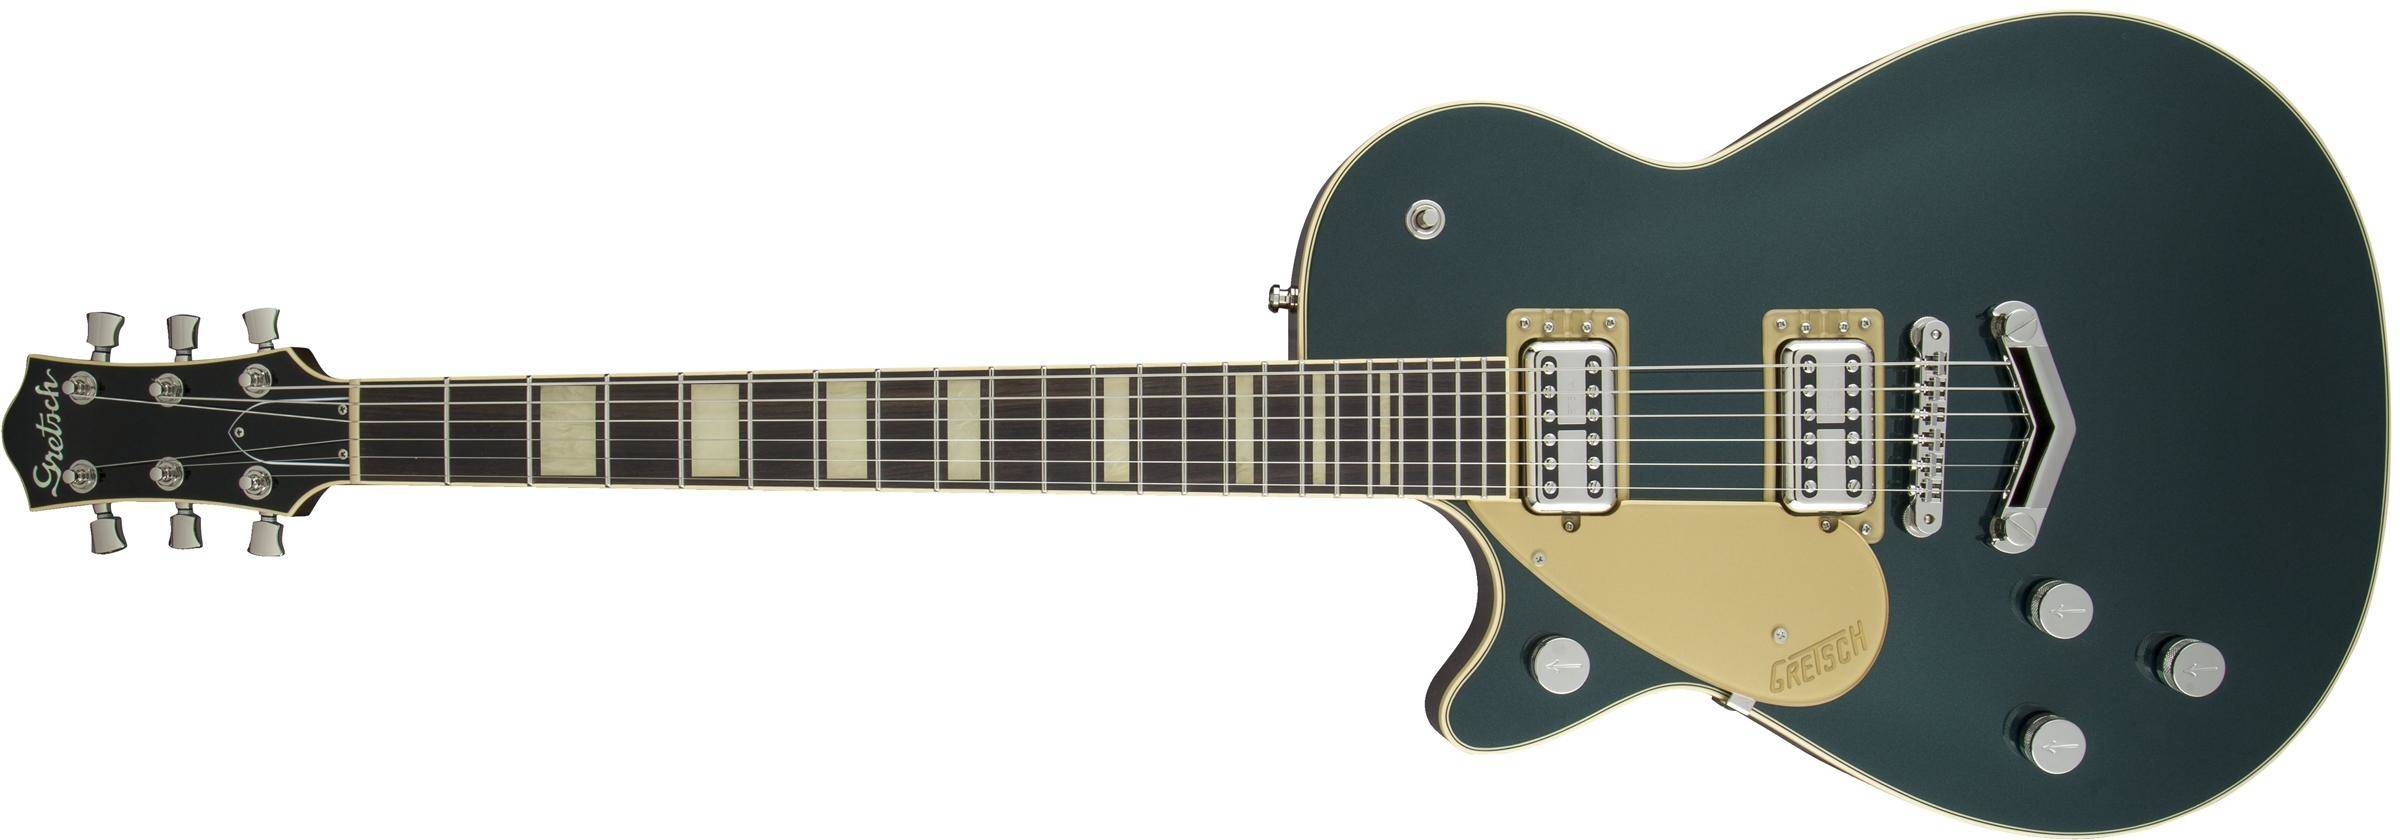 8d1cc130b71 Gretsch Guitars G6228LH Players Edition Jet BT With ''V'' Stoptail,  Rosewood Fingerboard - Cadillac Green, Left-Handed - Long & McQuade Musical  Instruments